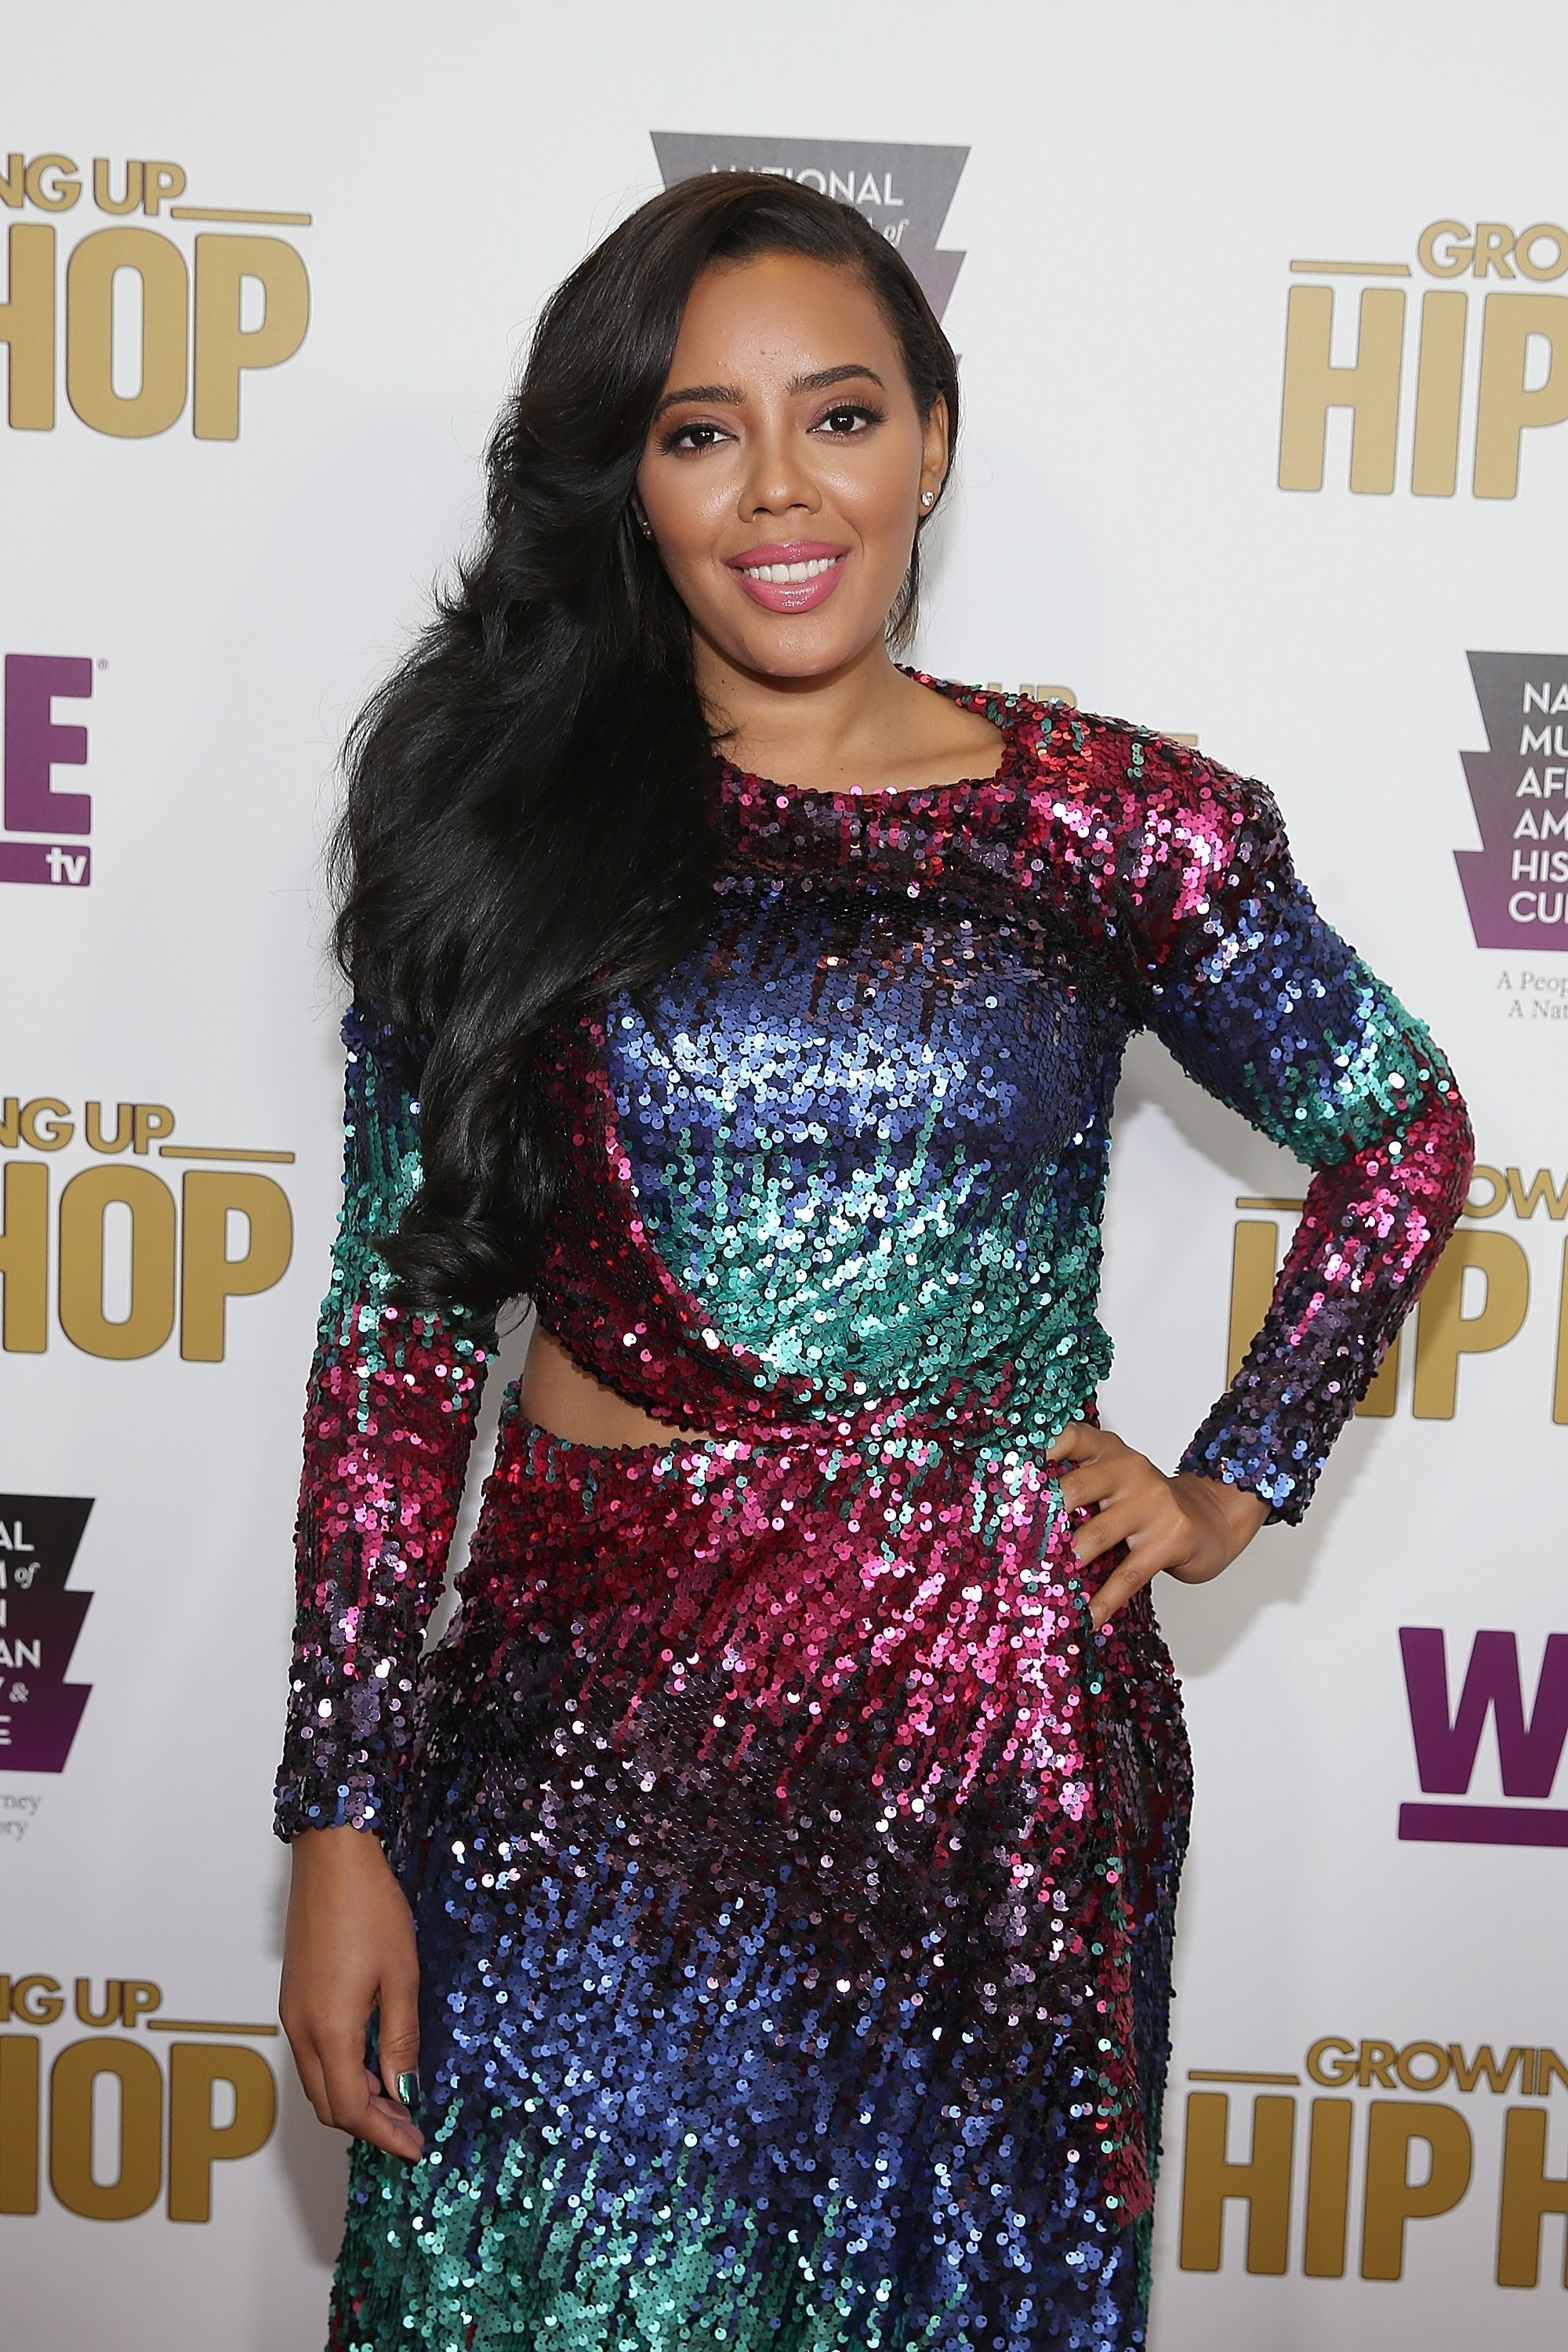 """Angela Simmons at the celebration of the third season of """"Growing Up Hip Hop"""" in July 2017.   Photo: Getty Images/GlobalImagesUkraine"""